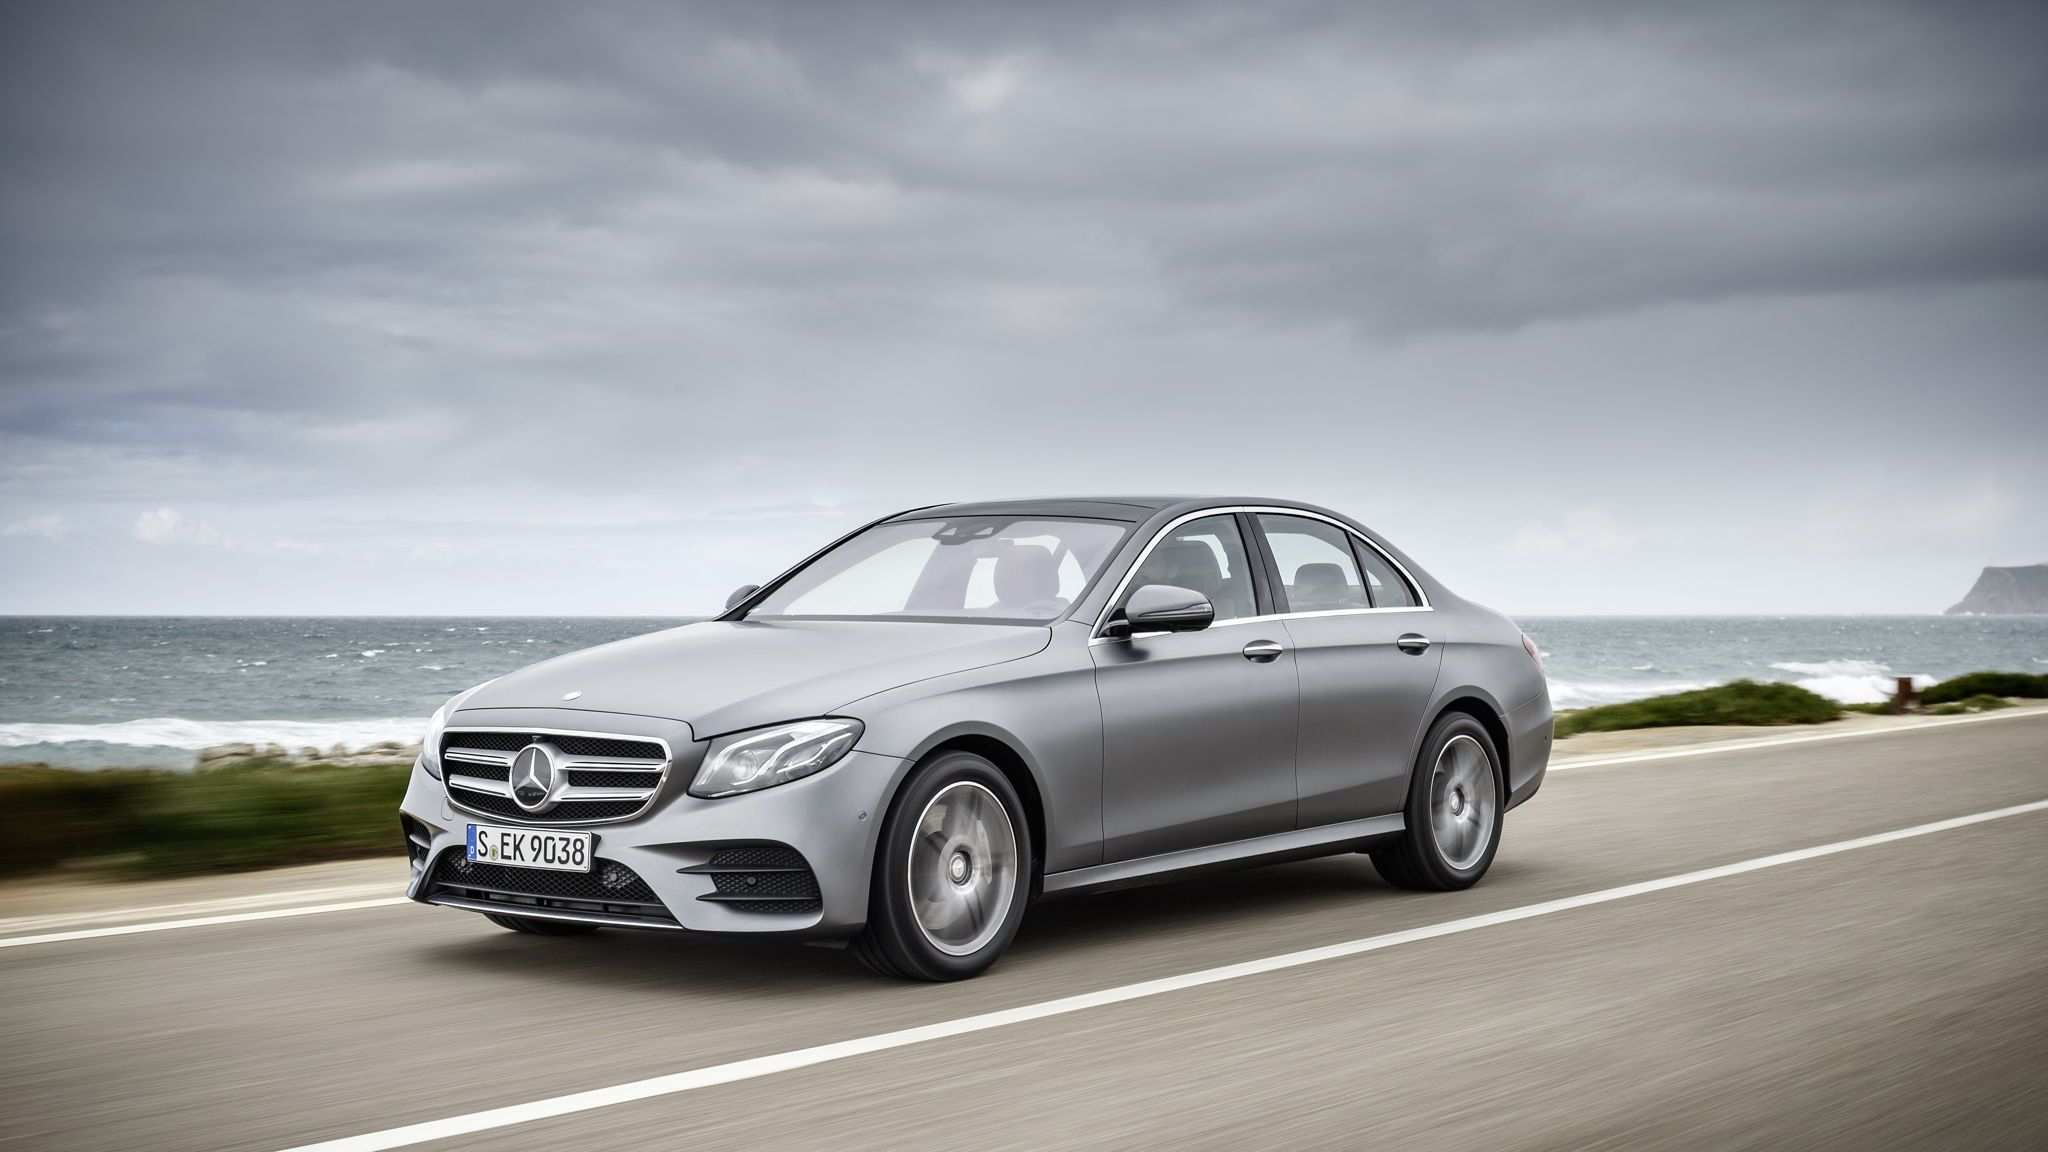 88 Concept of Mercedes A Class Hybrid 2020 Engine for Mercedes A Class Hybrid 2020